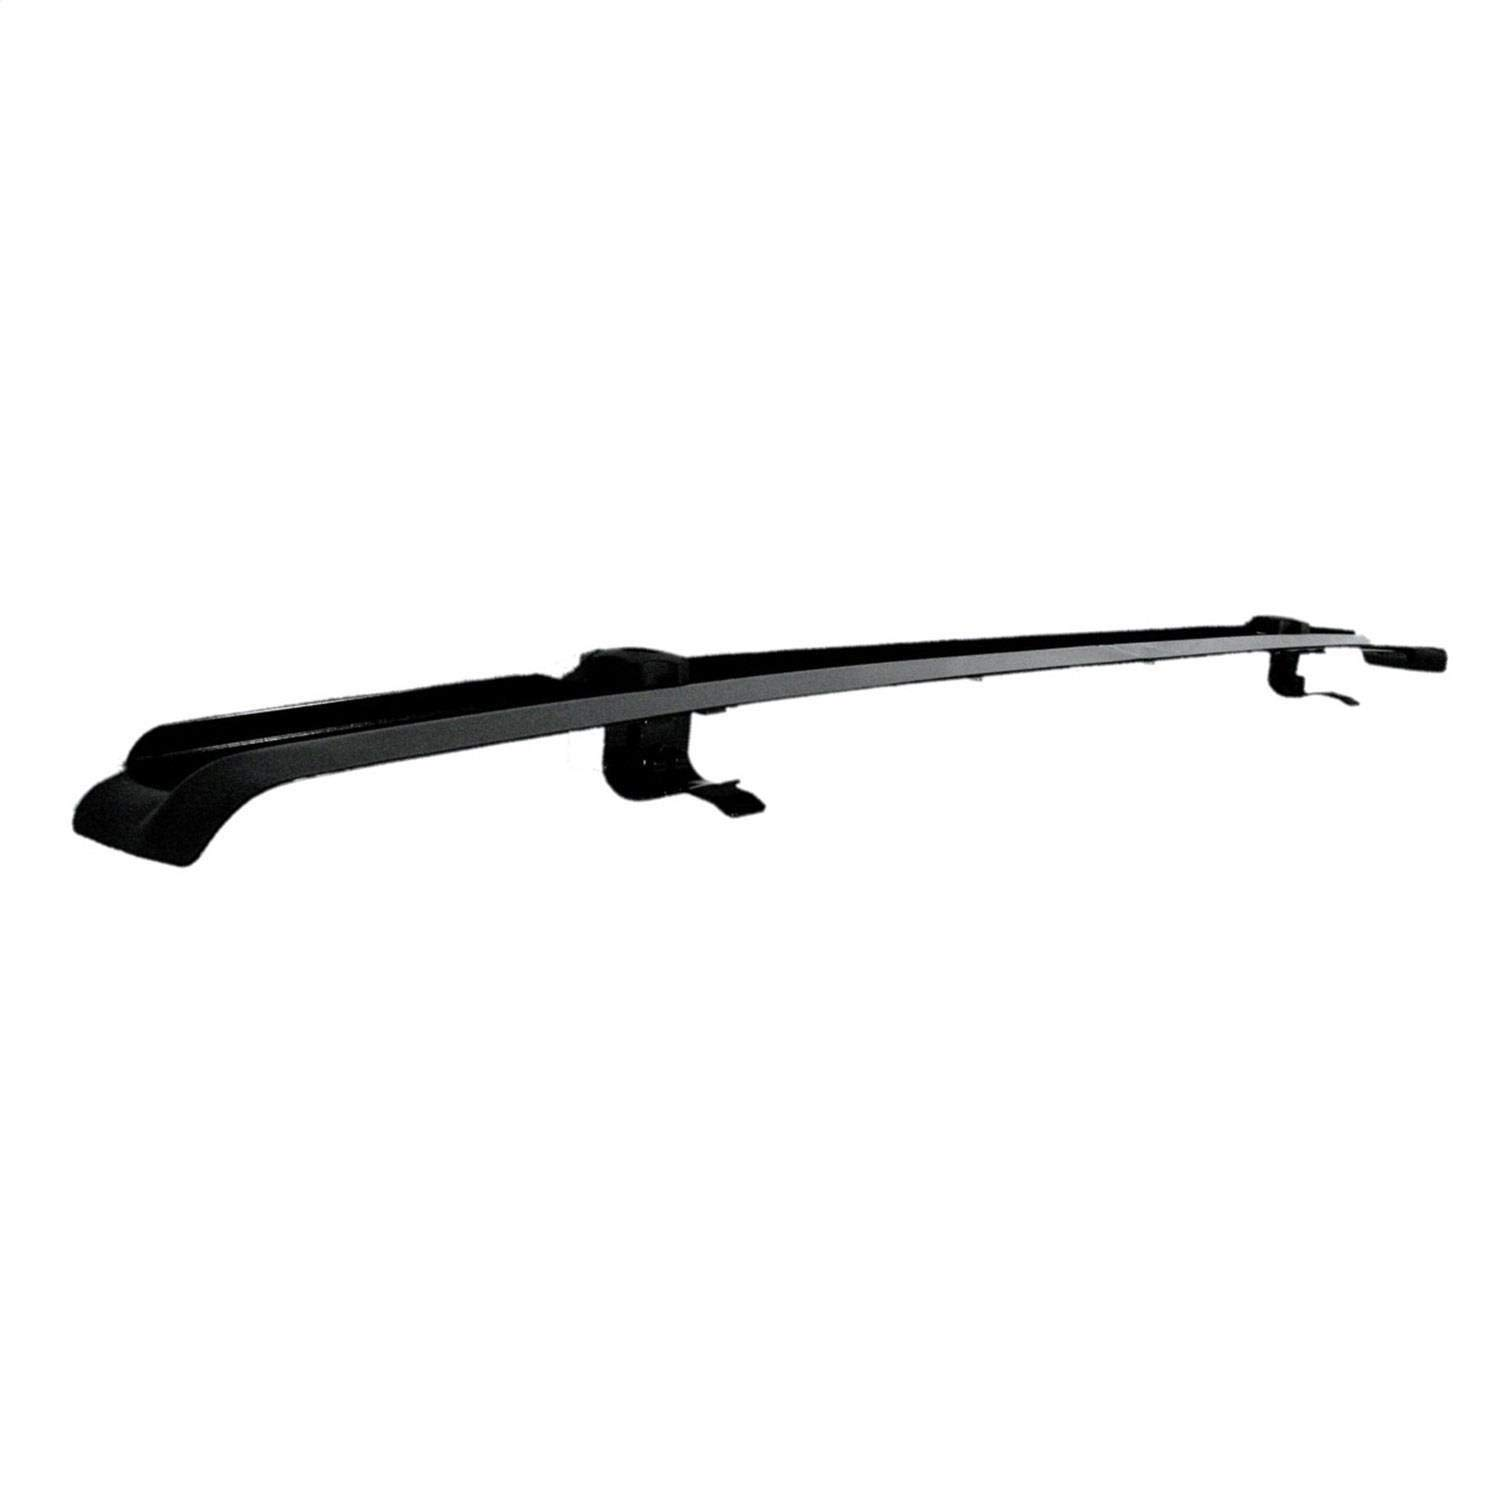 RAMPAGE PRODUCTS 109535 Frameless Trail Top for 1997-2006 Jeep Wrangler TJ, Black Diamond w/Tinted Windows